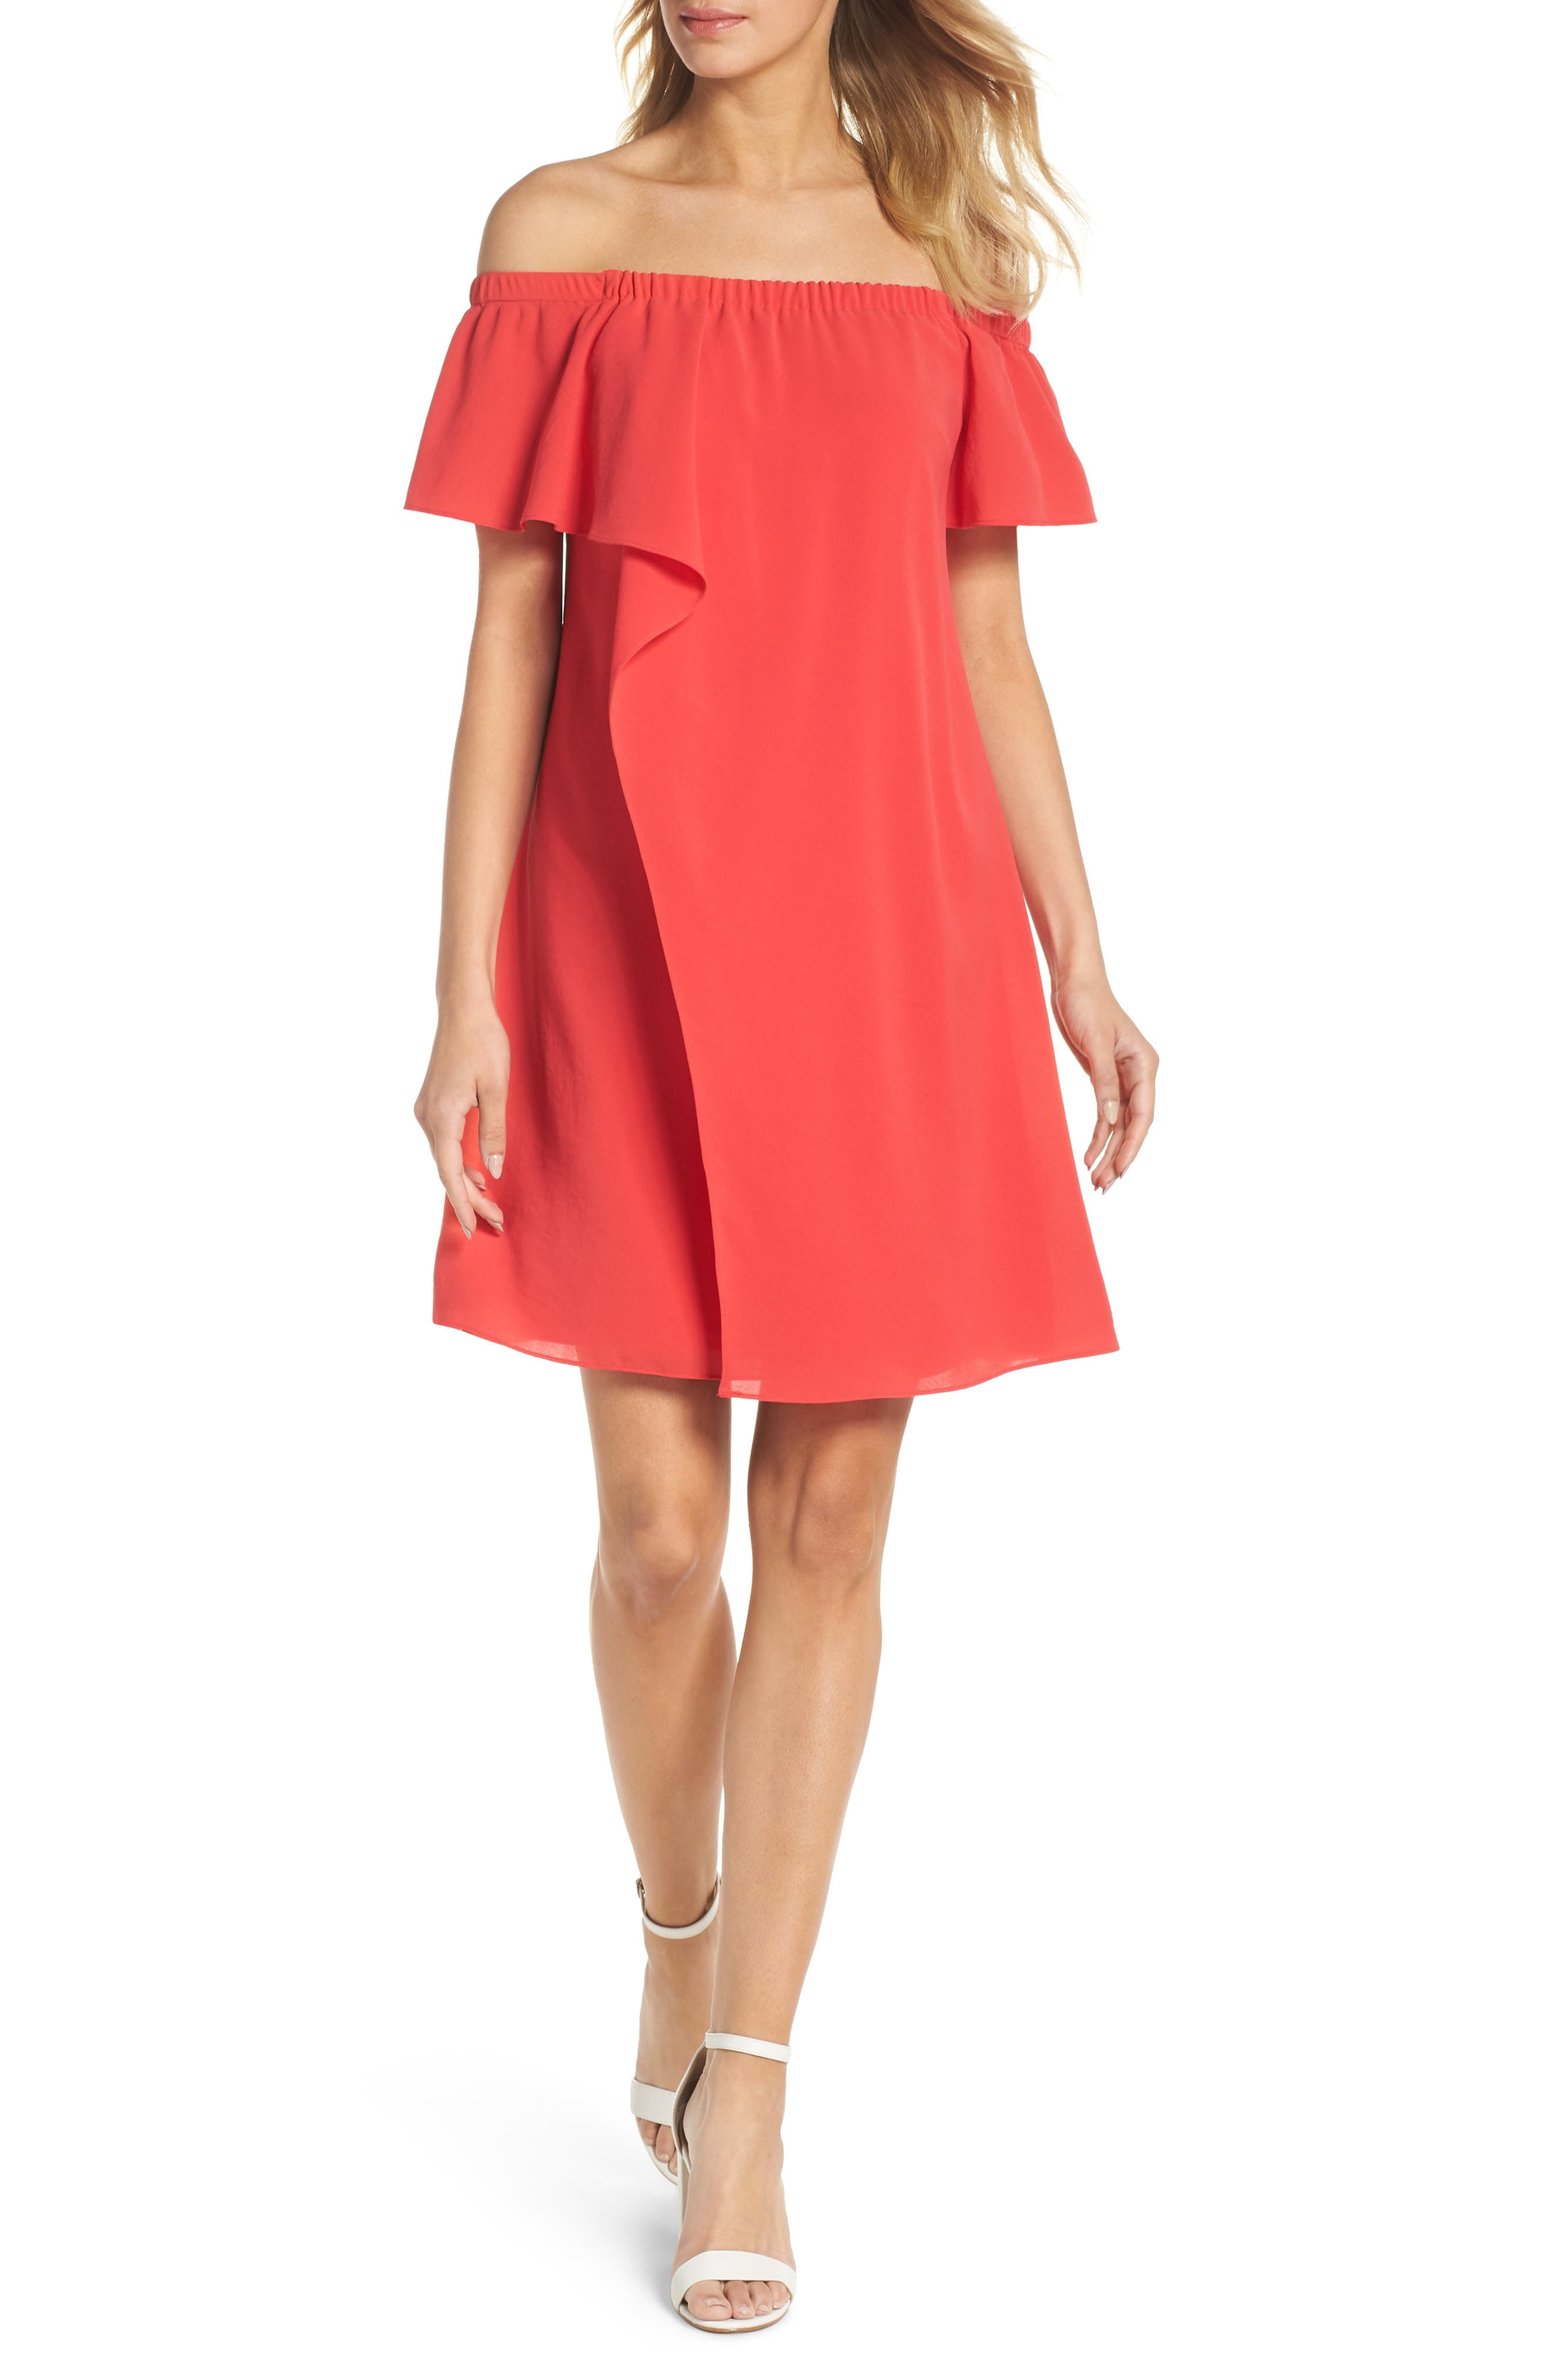 Adrianna Papell Off the Shoulder Crepe Dress